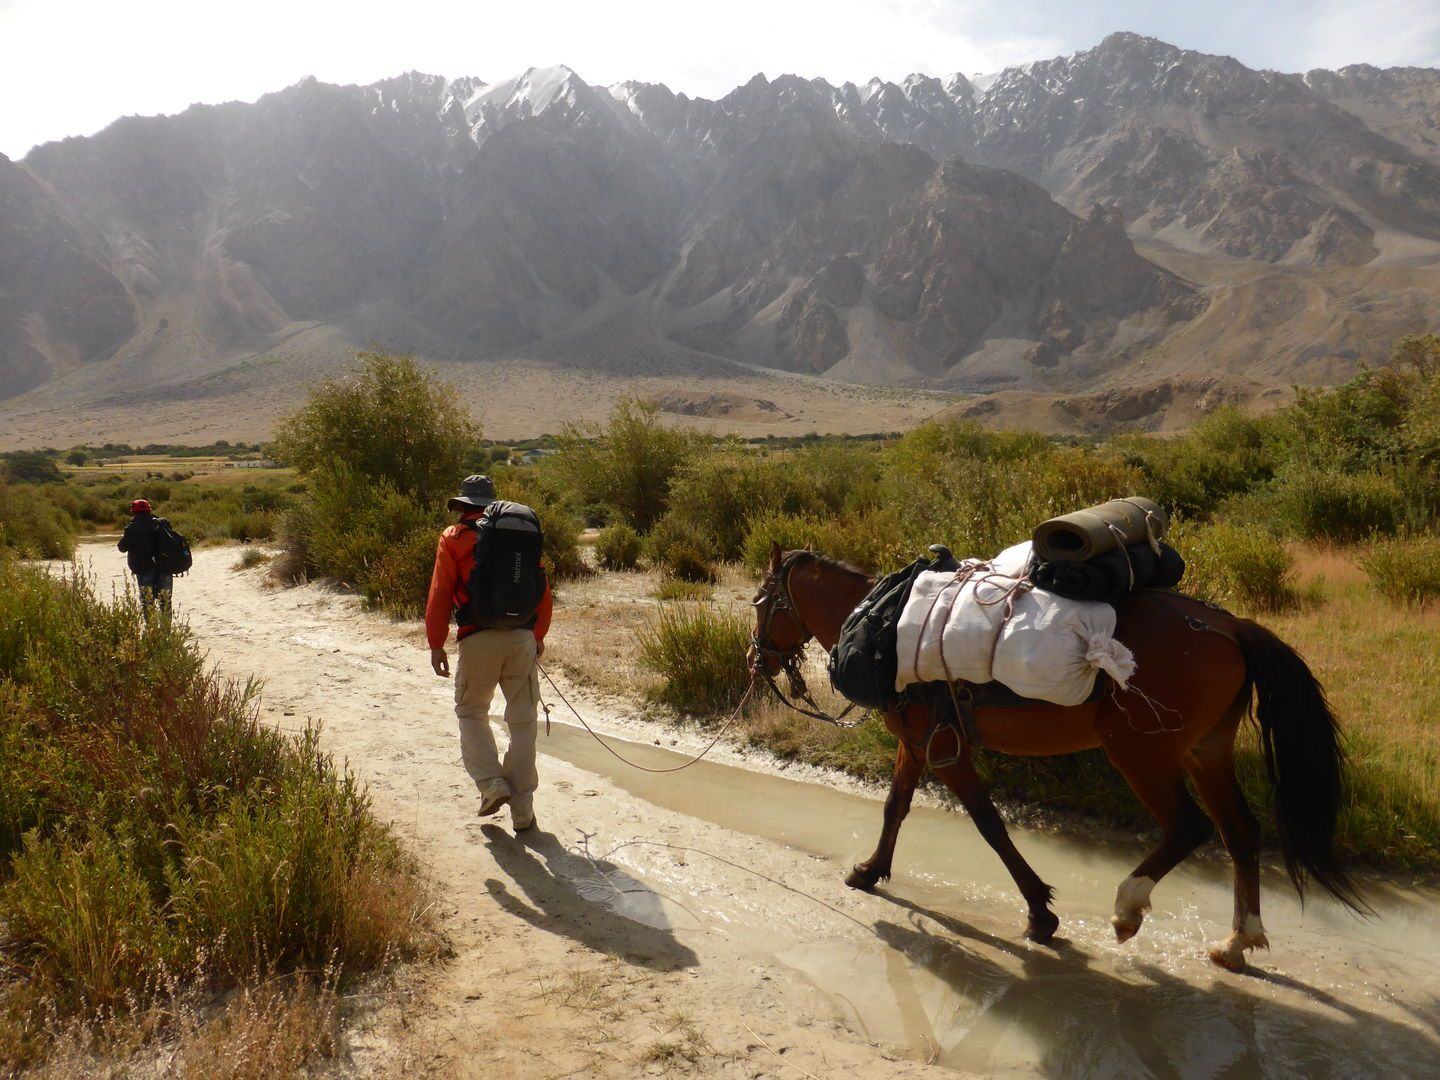 Horse and guide during trekking tour in Tajikistan